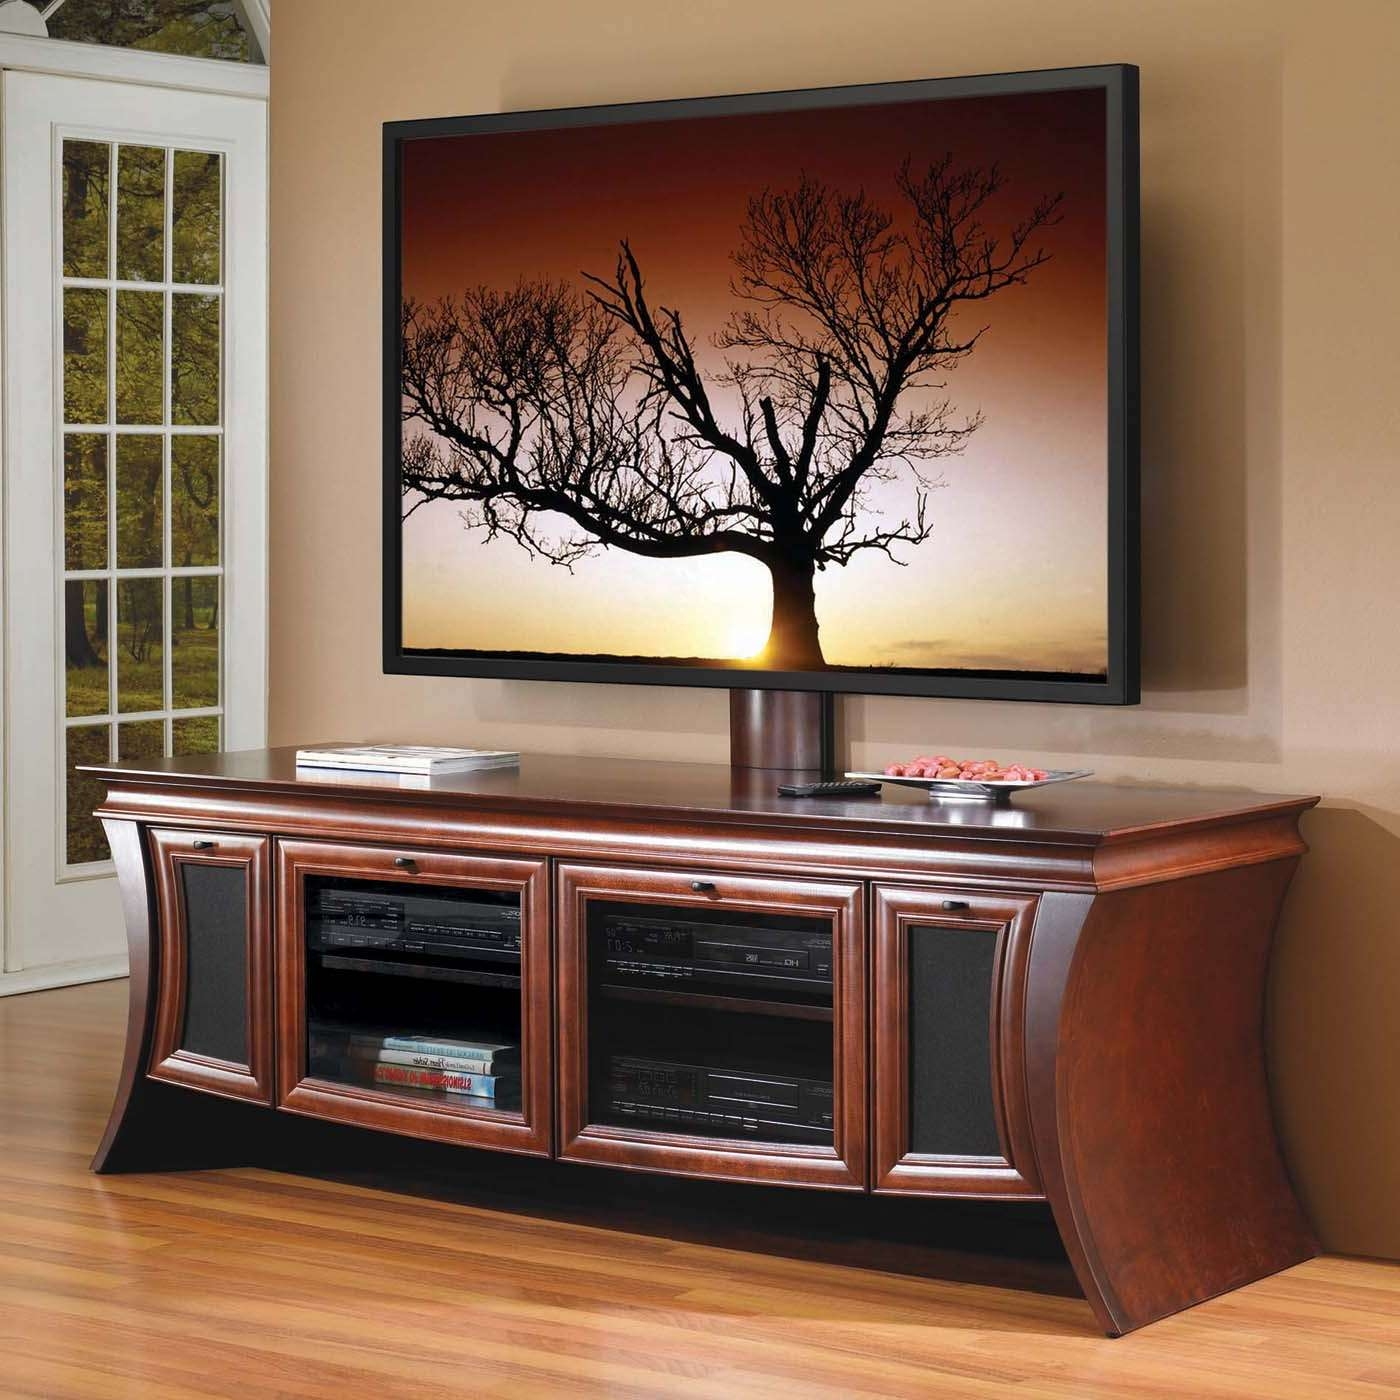 Tv Stands For 55 Inch Flat Screen – Furniture Depot Pertaining To Corner Tv Stands For 60 Inch Flat Screens (View 15 of 15)